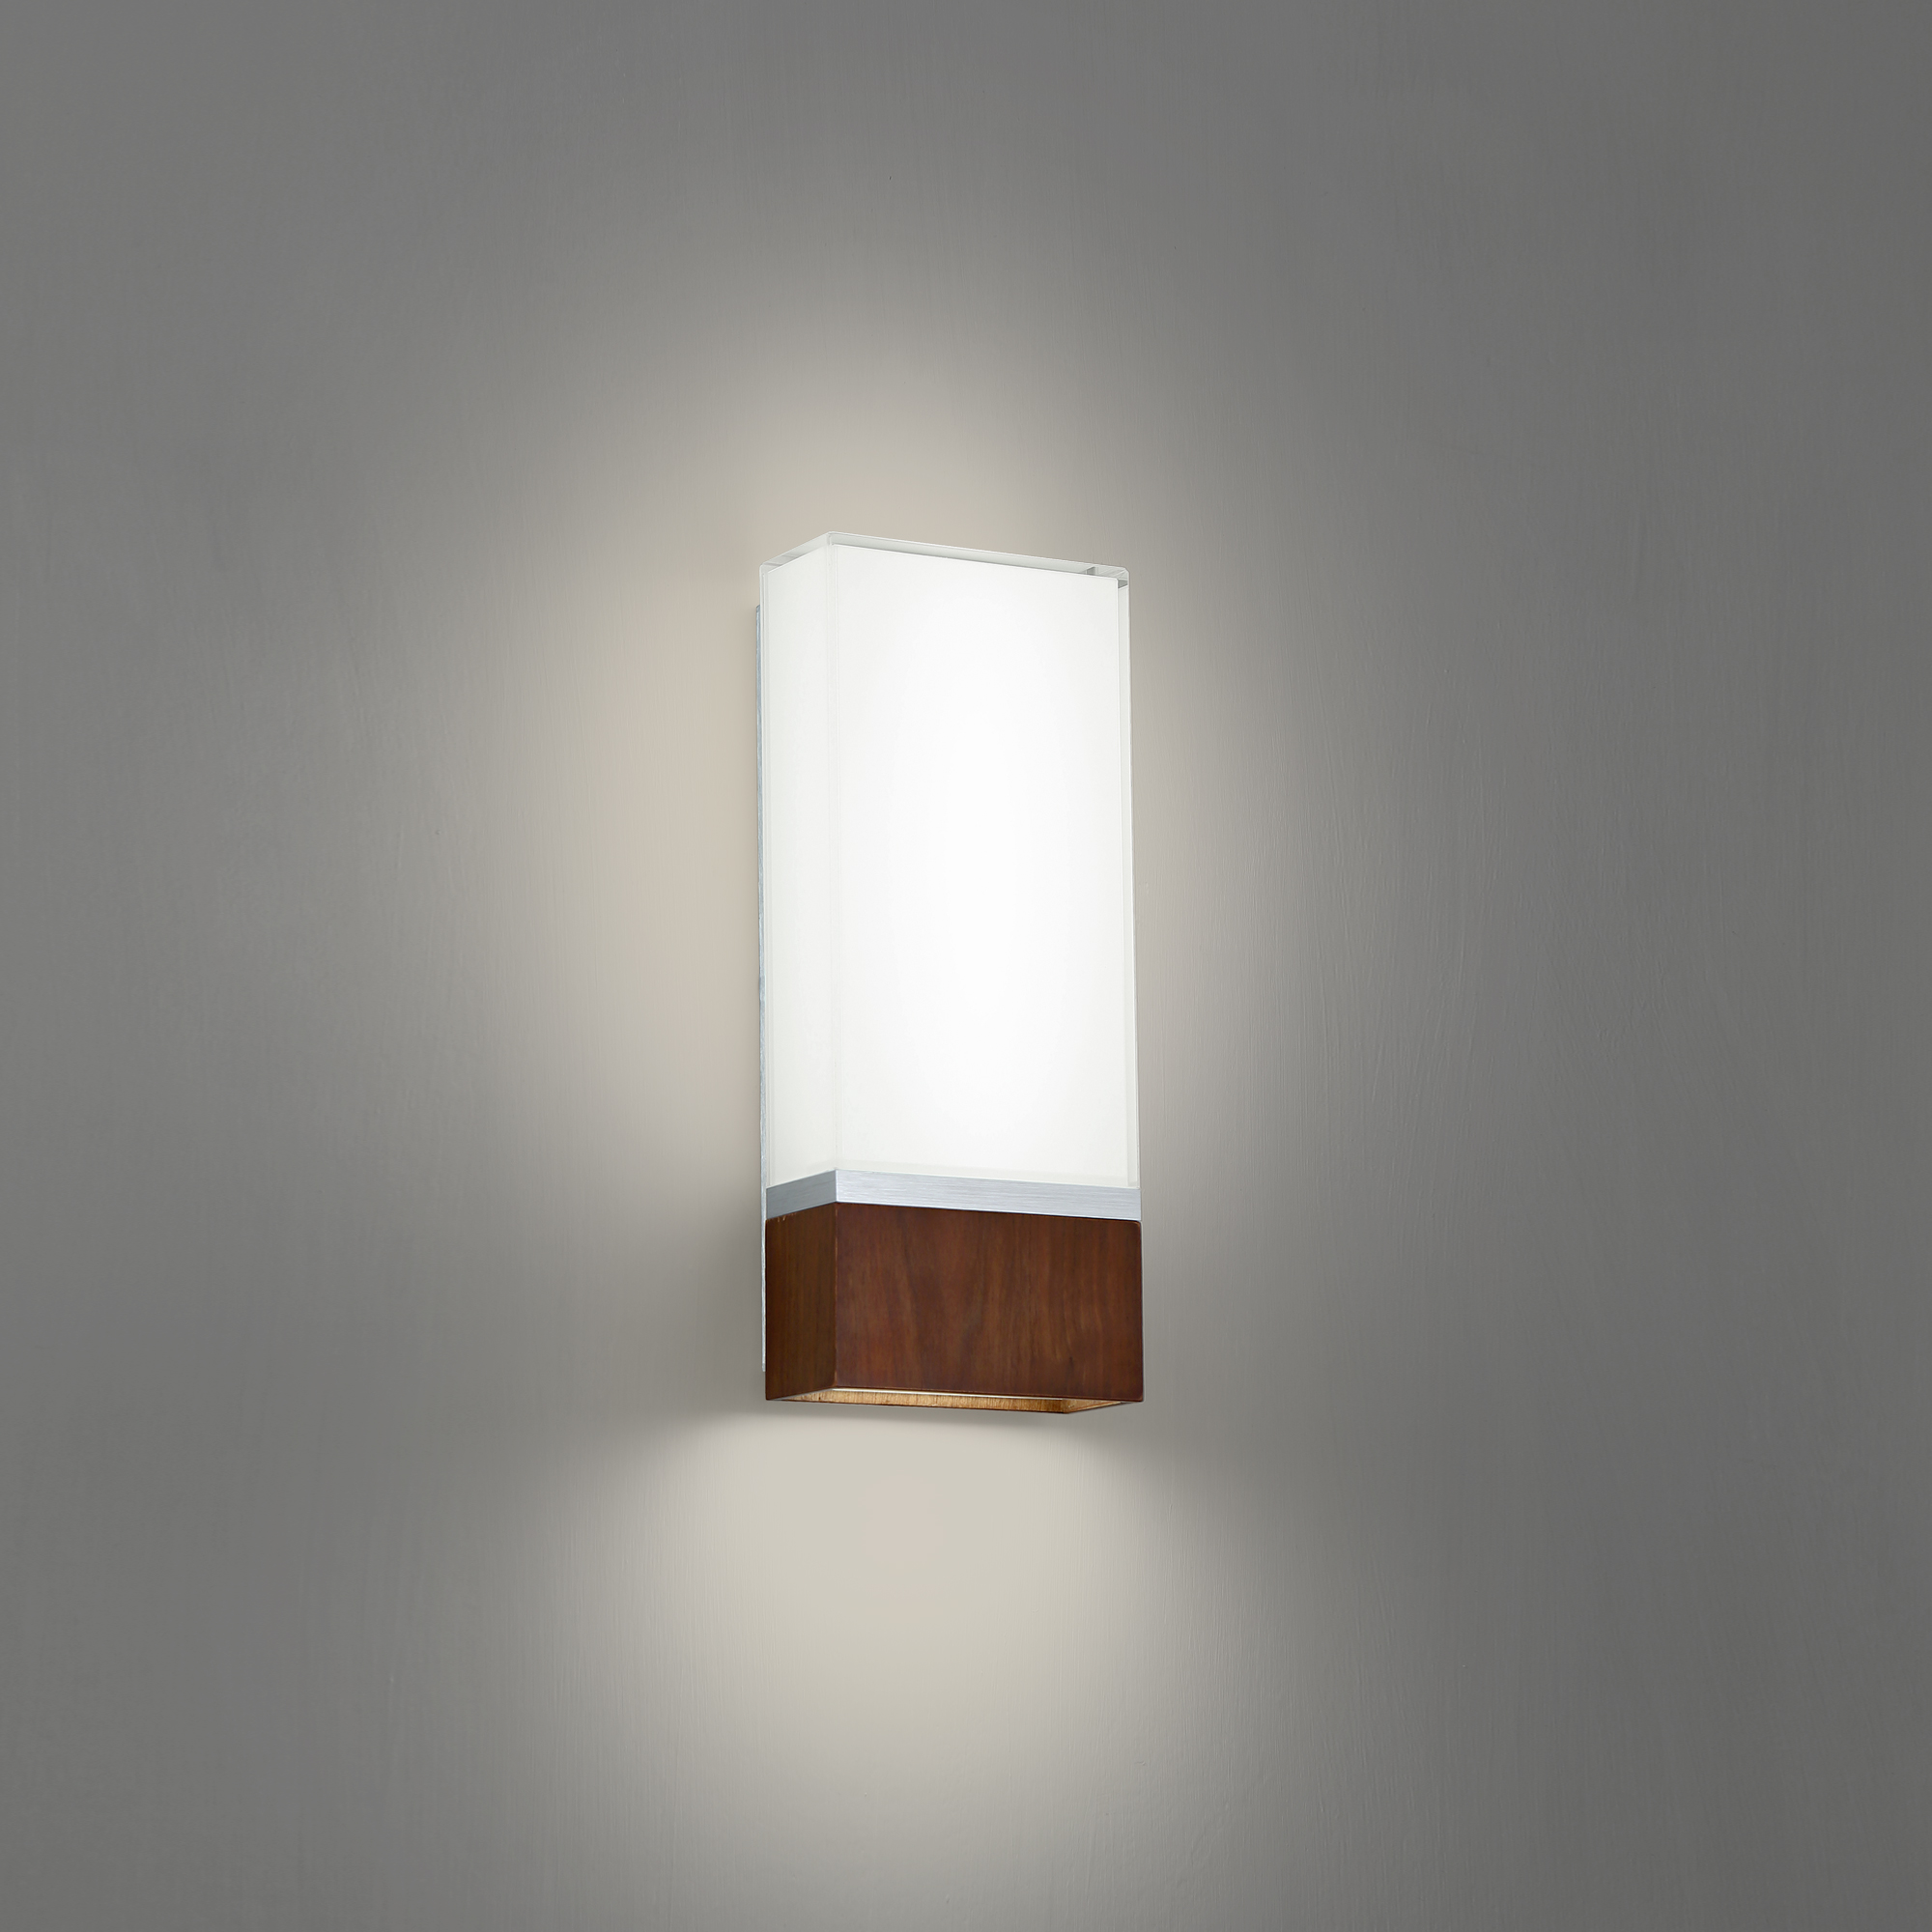 Vigo lighting product